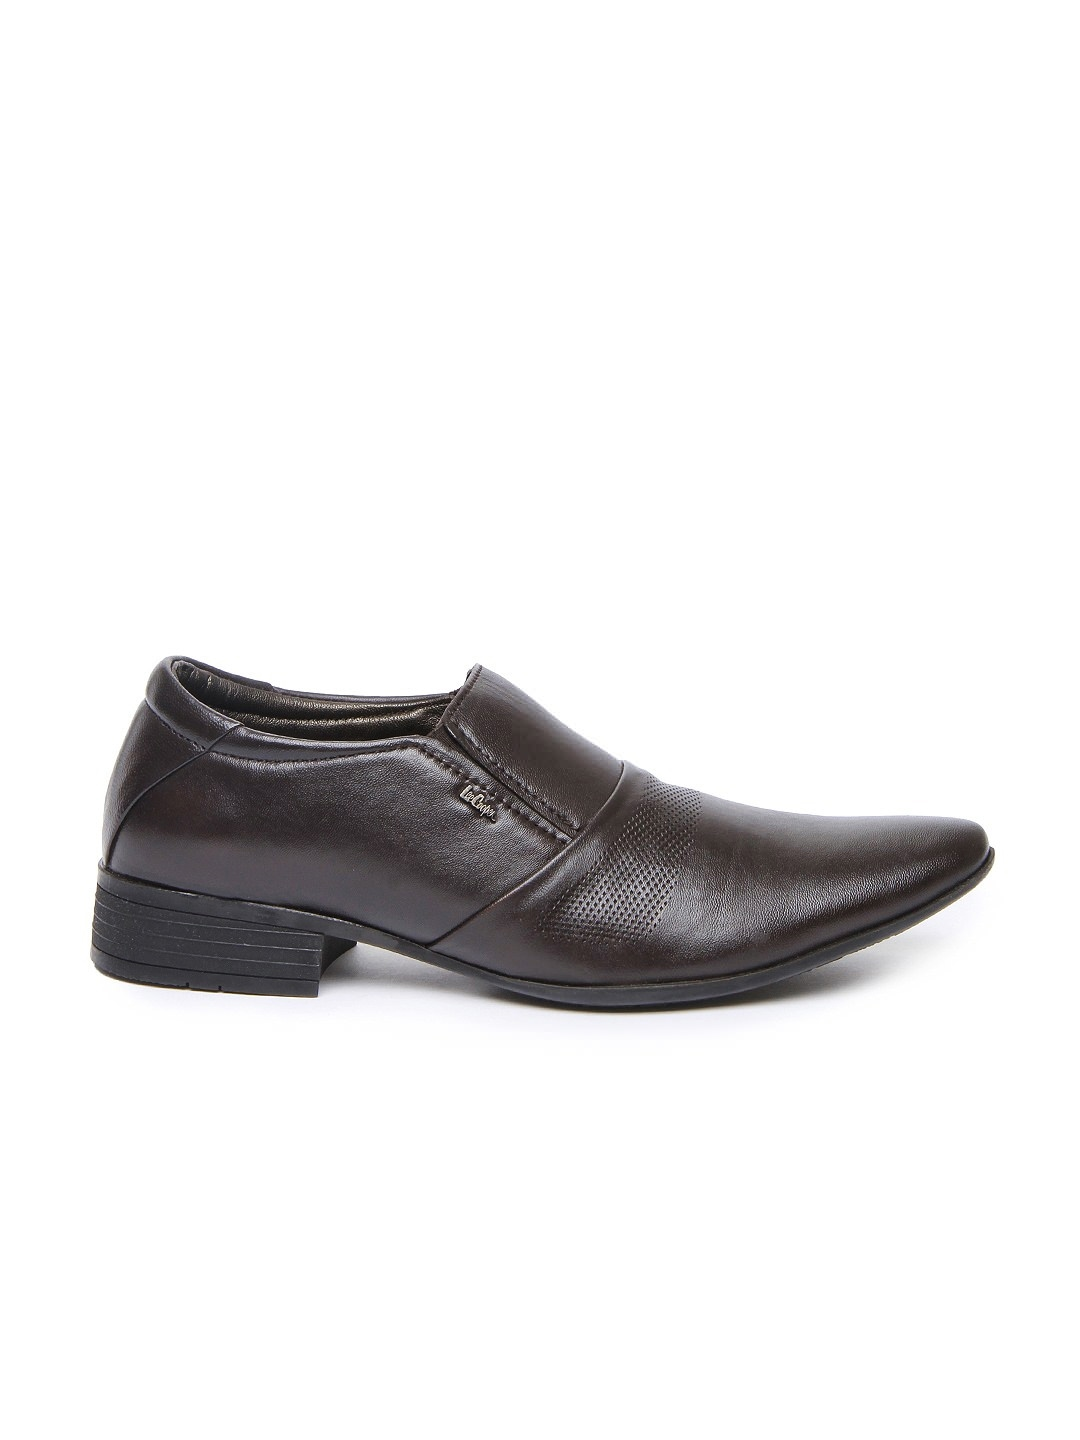 myntra cooper brown leather semi formal shoes